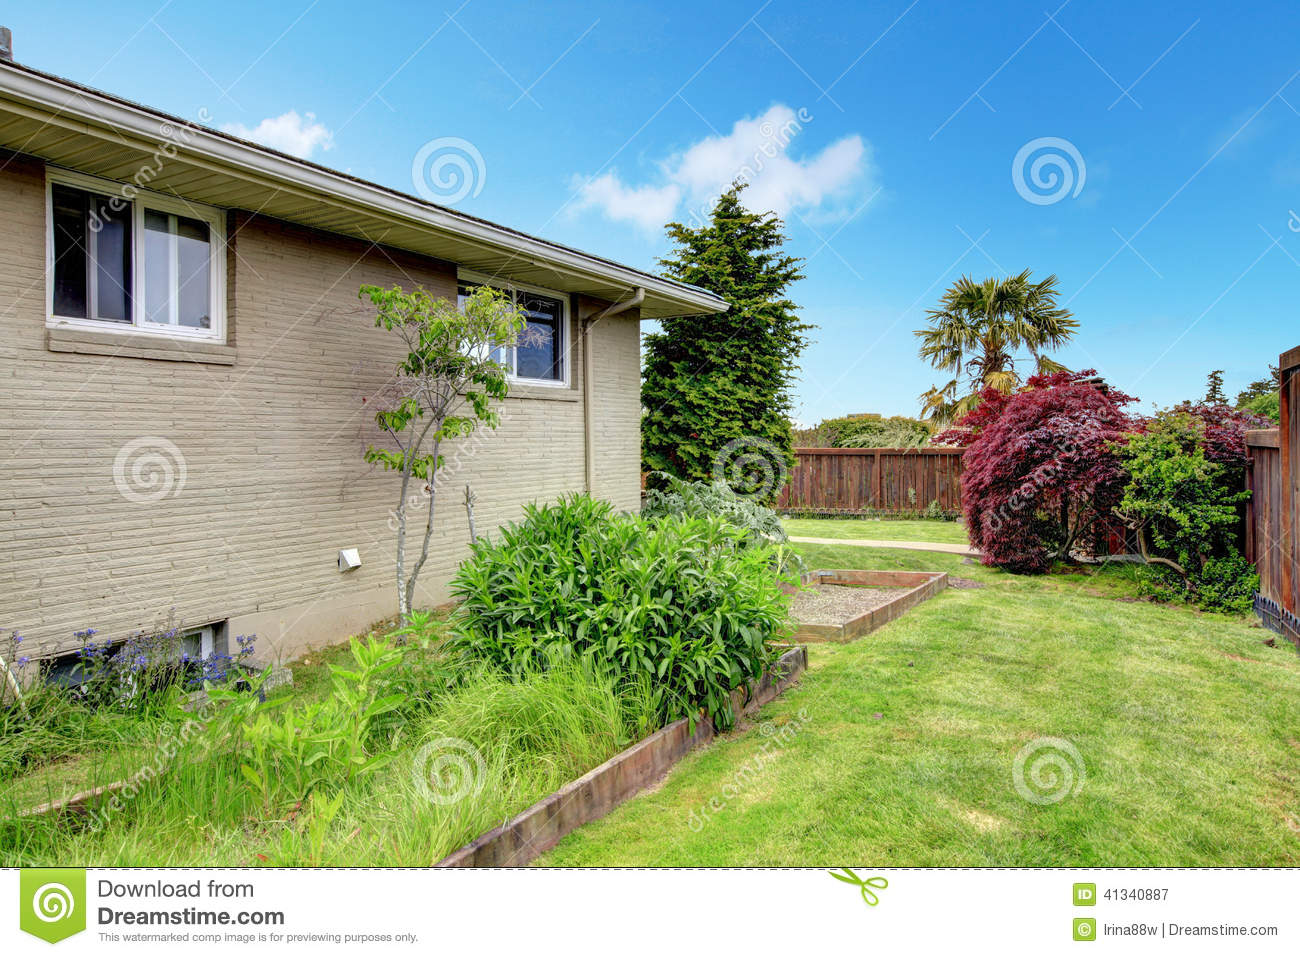 House exterior view of wall with flower bed royalty free for Exterior view of house